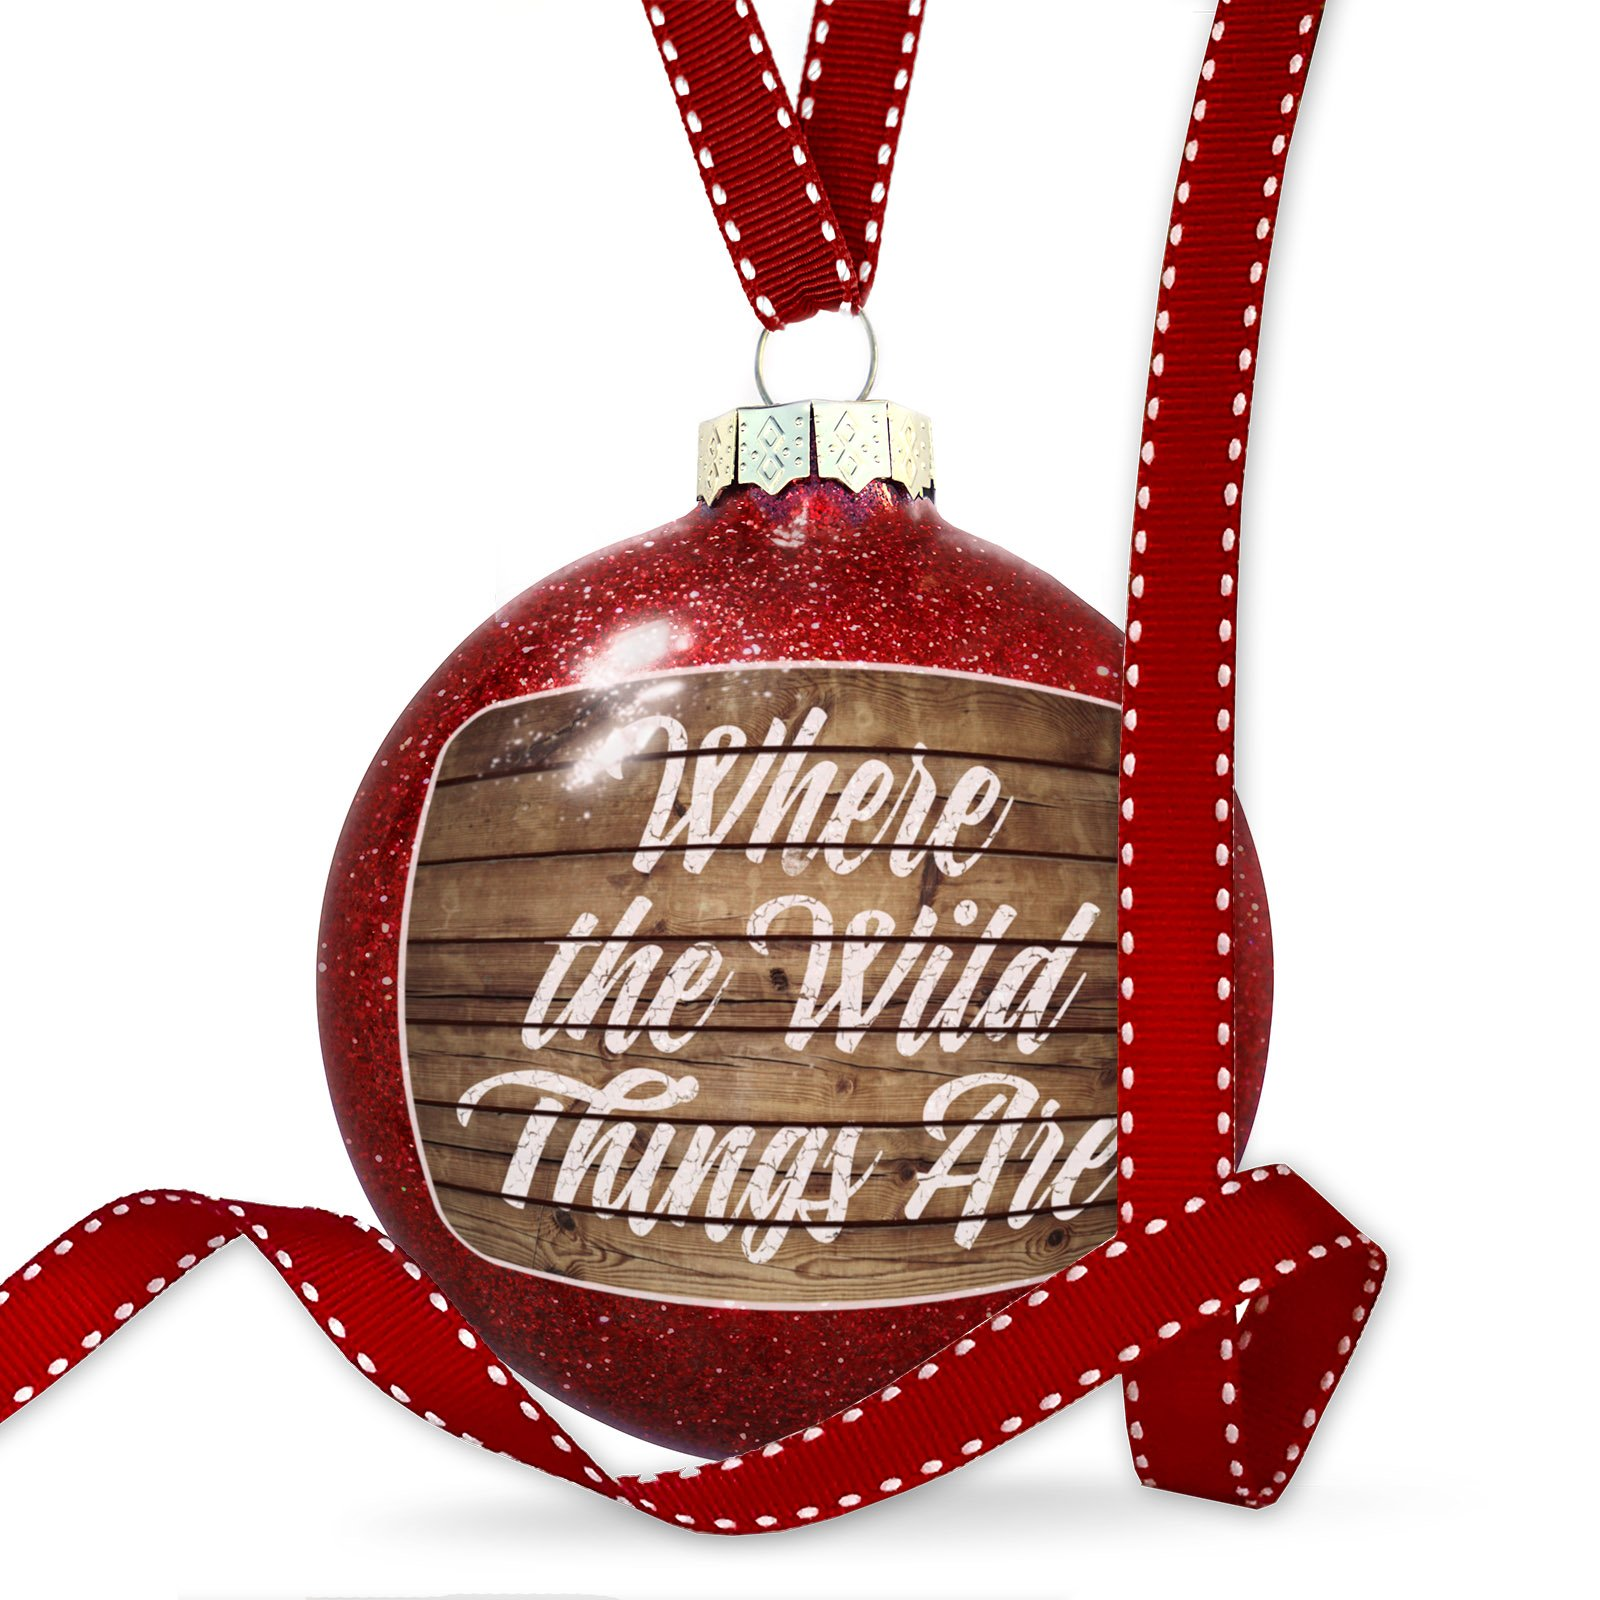 Christmas Decoration Painted Wood Where the Wild Things Are Ornament